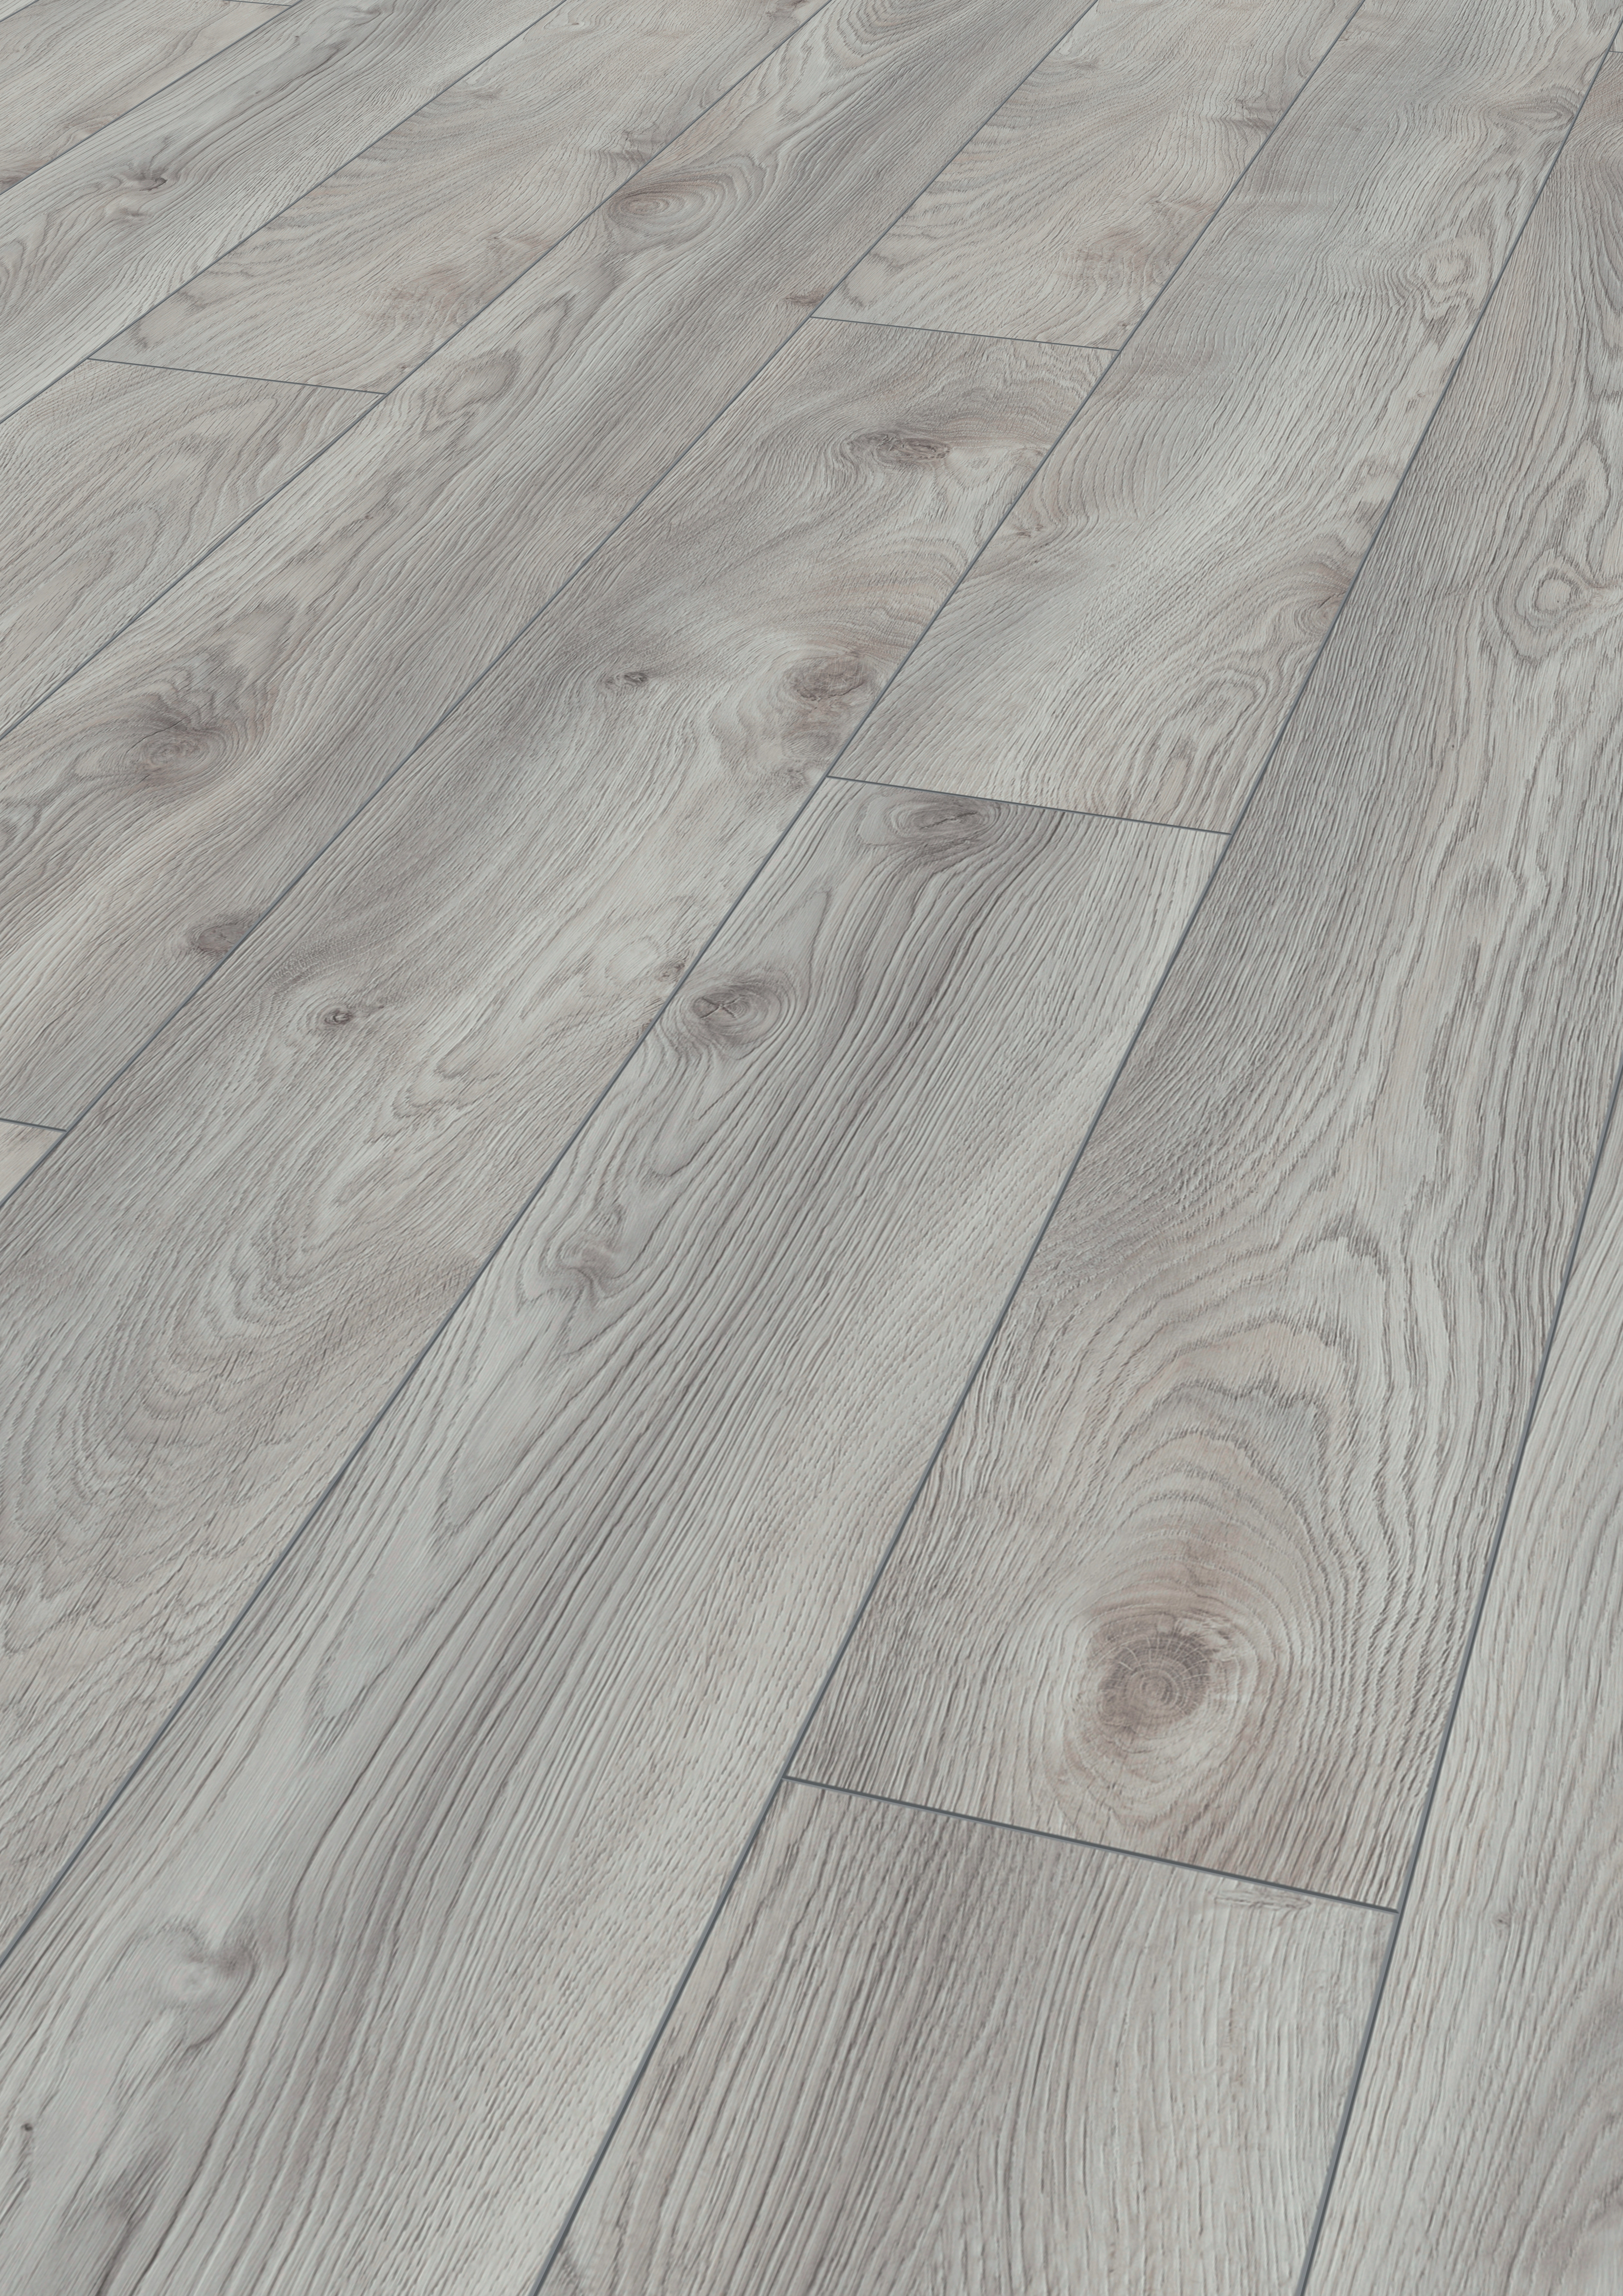 25 Unique Hardwood Flooring Bend oregon 2021 free download hardwood flooring bend oregon of mammut laminate flooring in country house plank style kronotex inside download picture amp